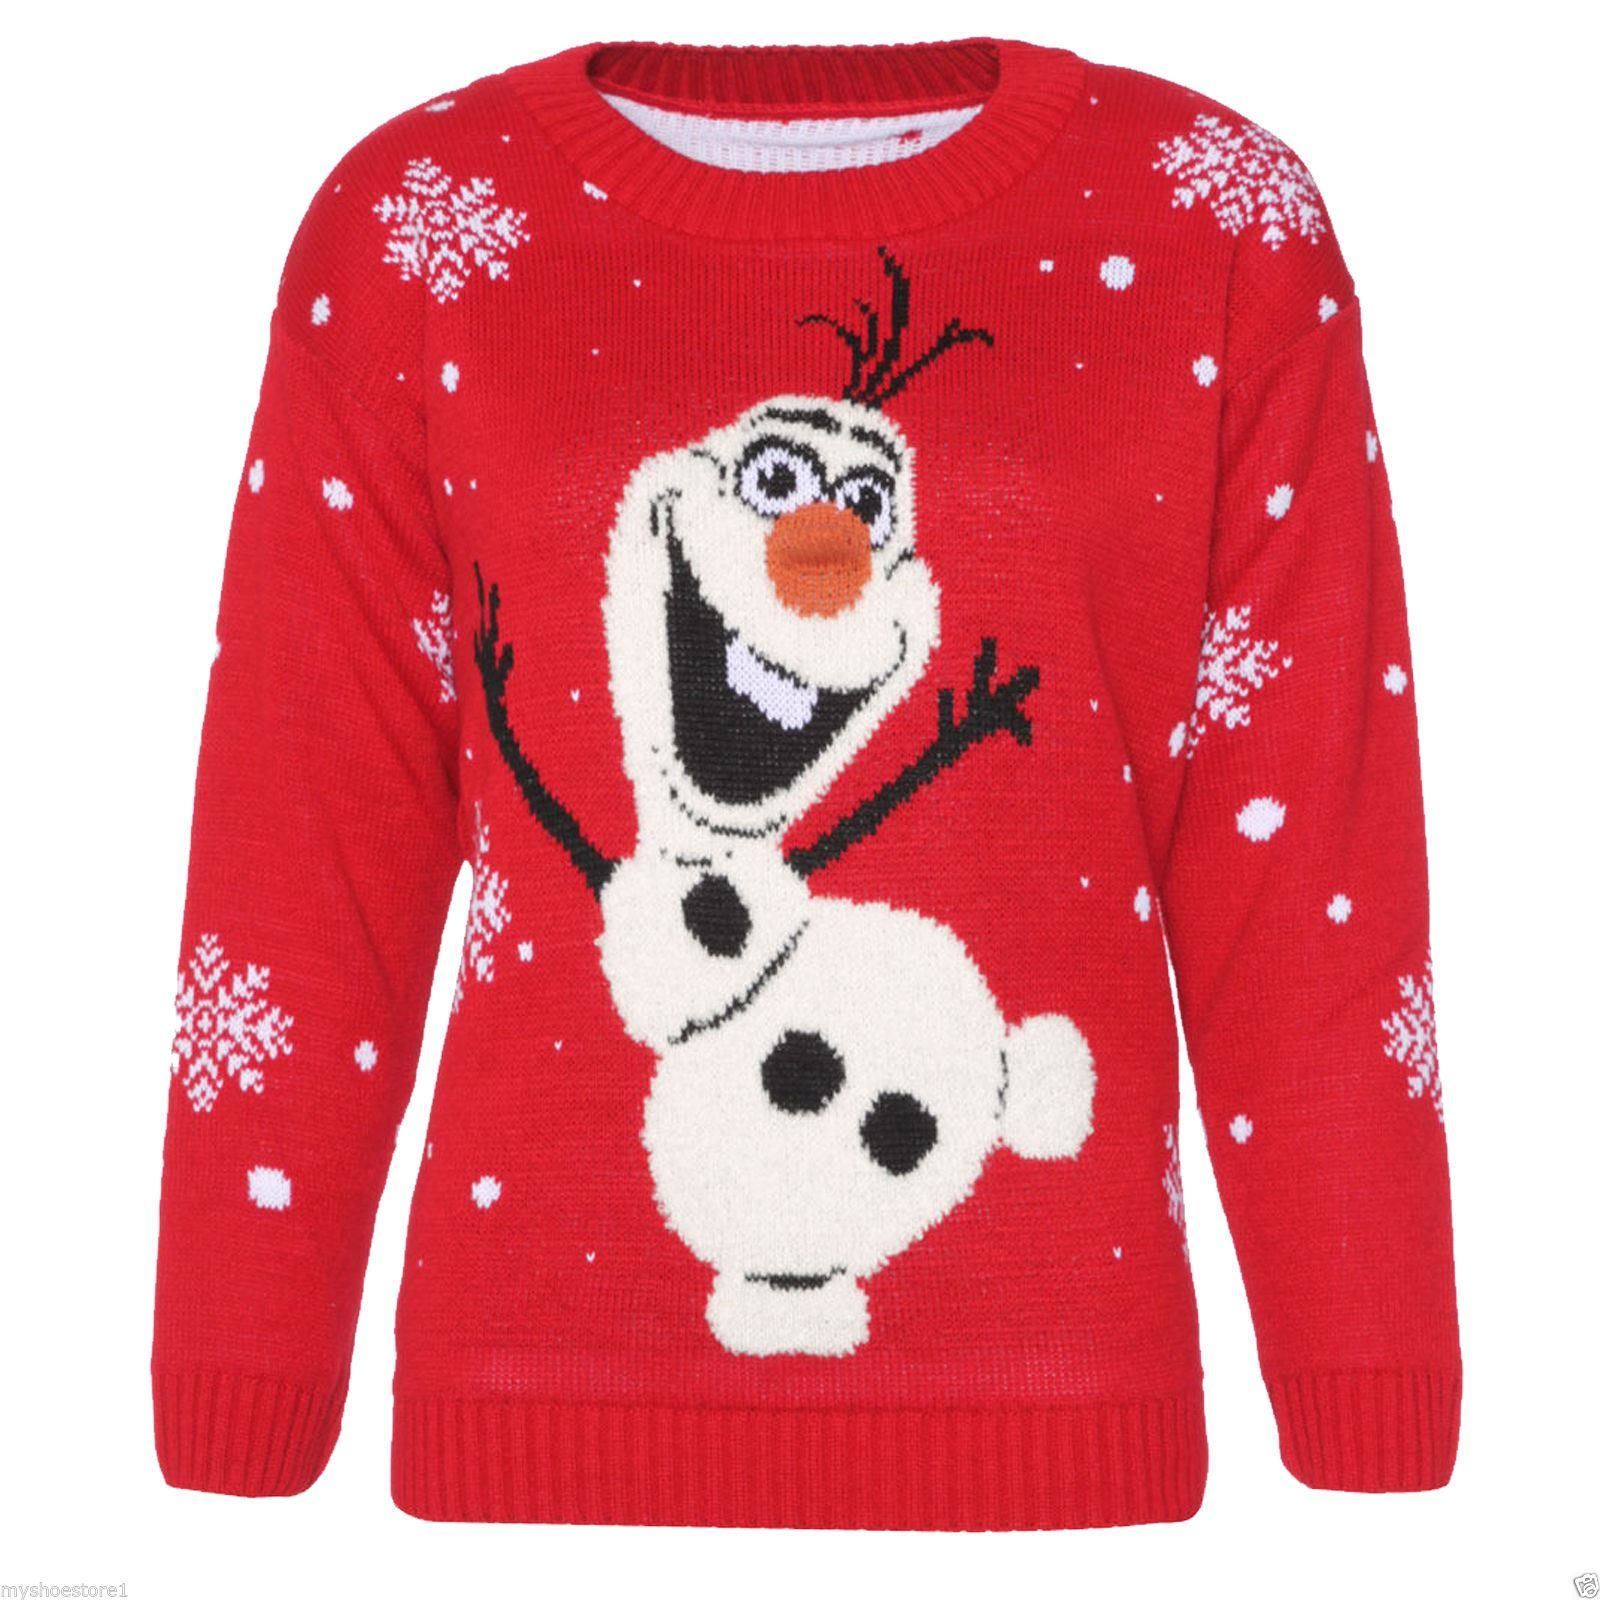 Olaf Christmas Jumper Knitting Pattern : Unisex Christmas Jumpers Olaf Minion ReindeerxMAS Knitted Tops Winter Jumpe...